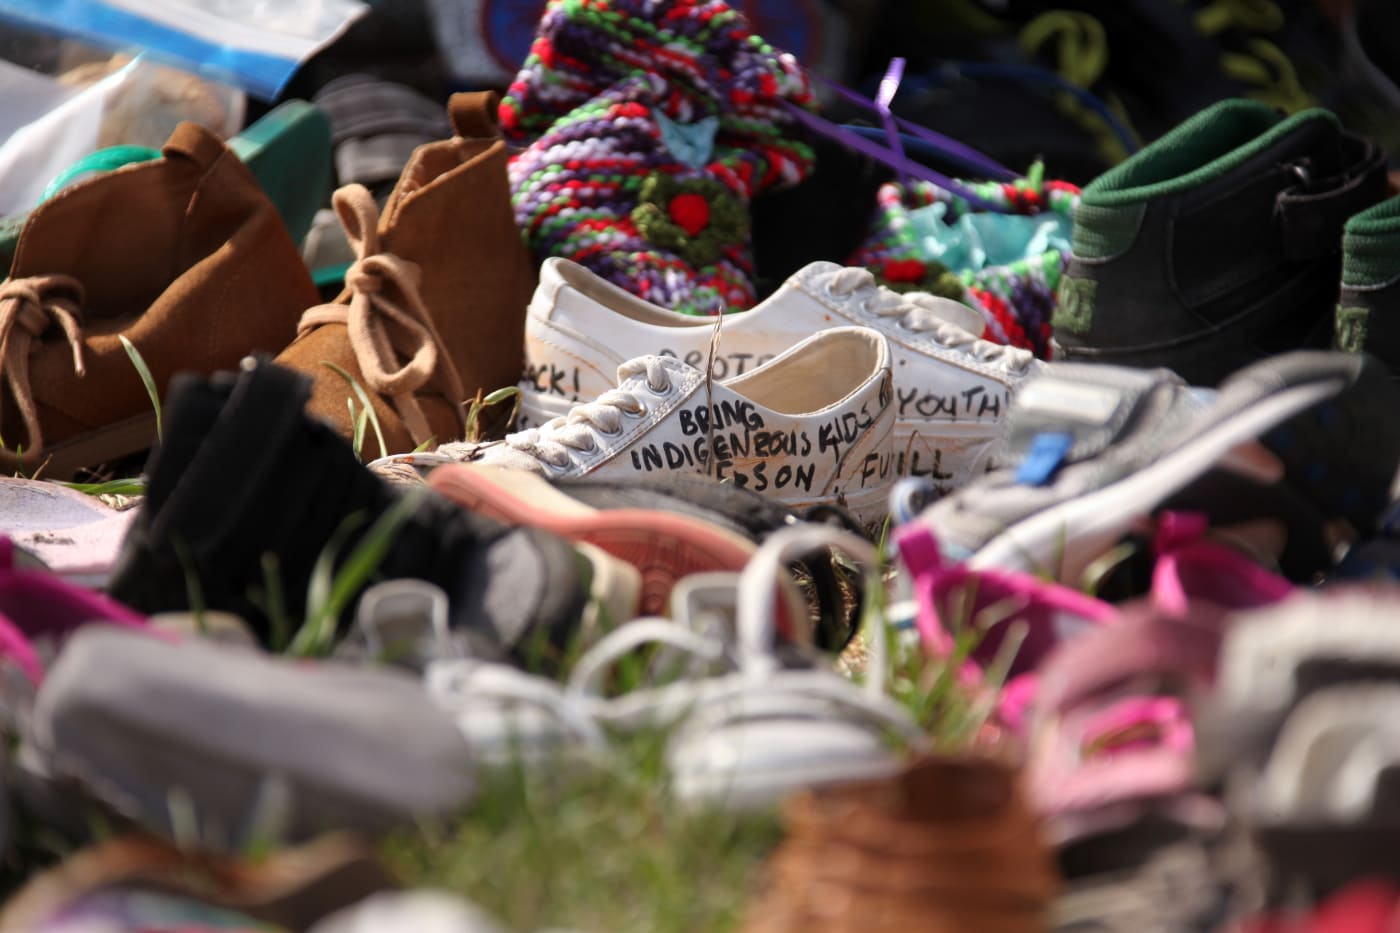 Shoes are placed at Ryerson Univerisity to mourn 215 indigenous children whose remains were discovered at a former residential school on June 7, 2021 in Toronto, Canada.